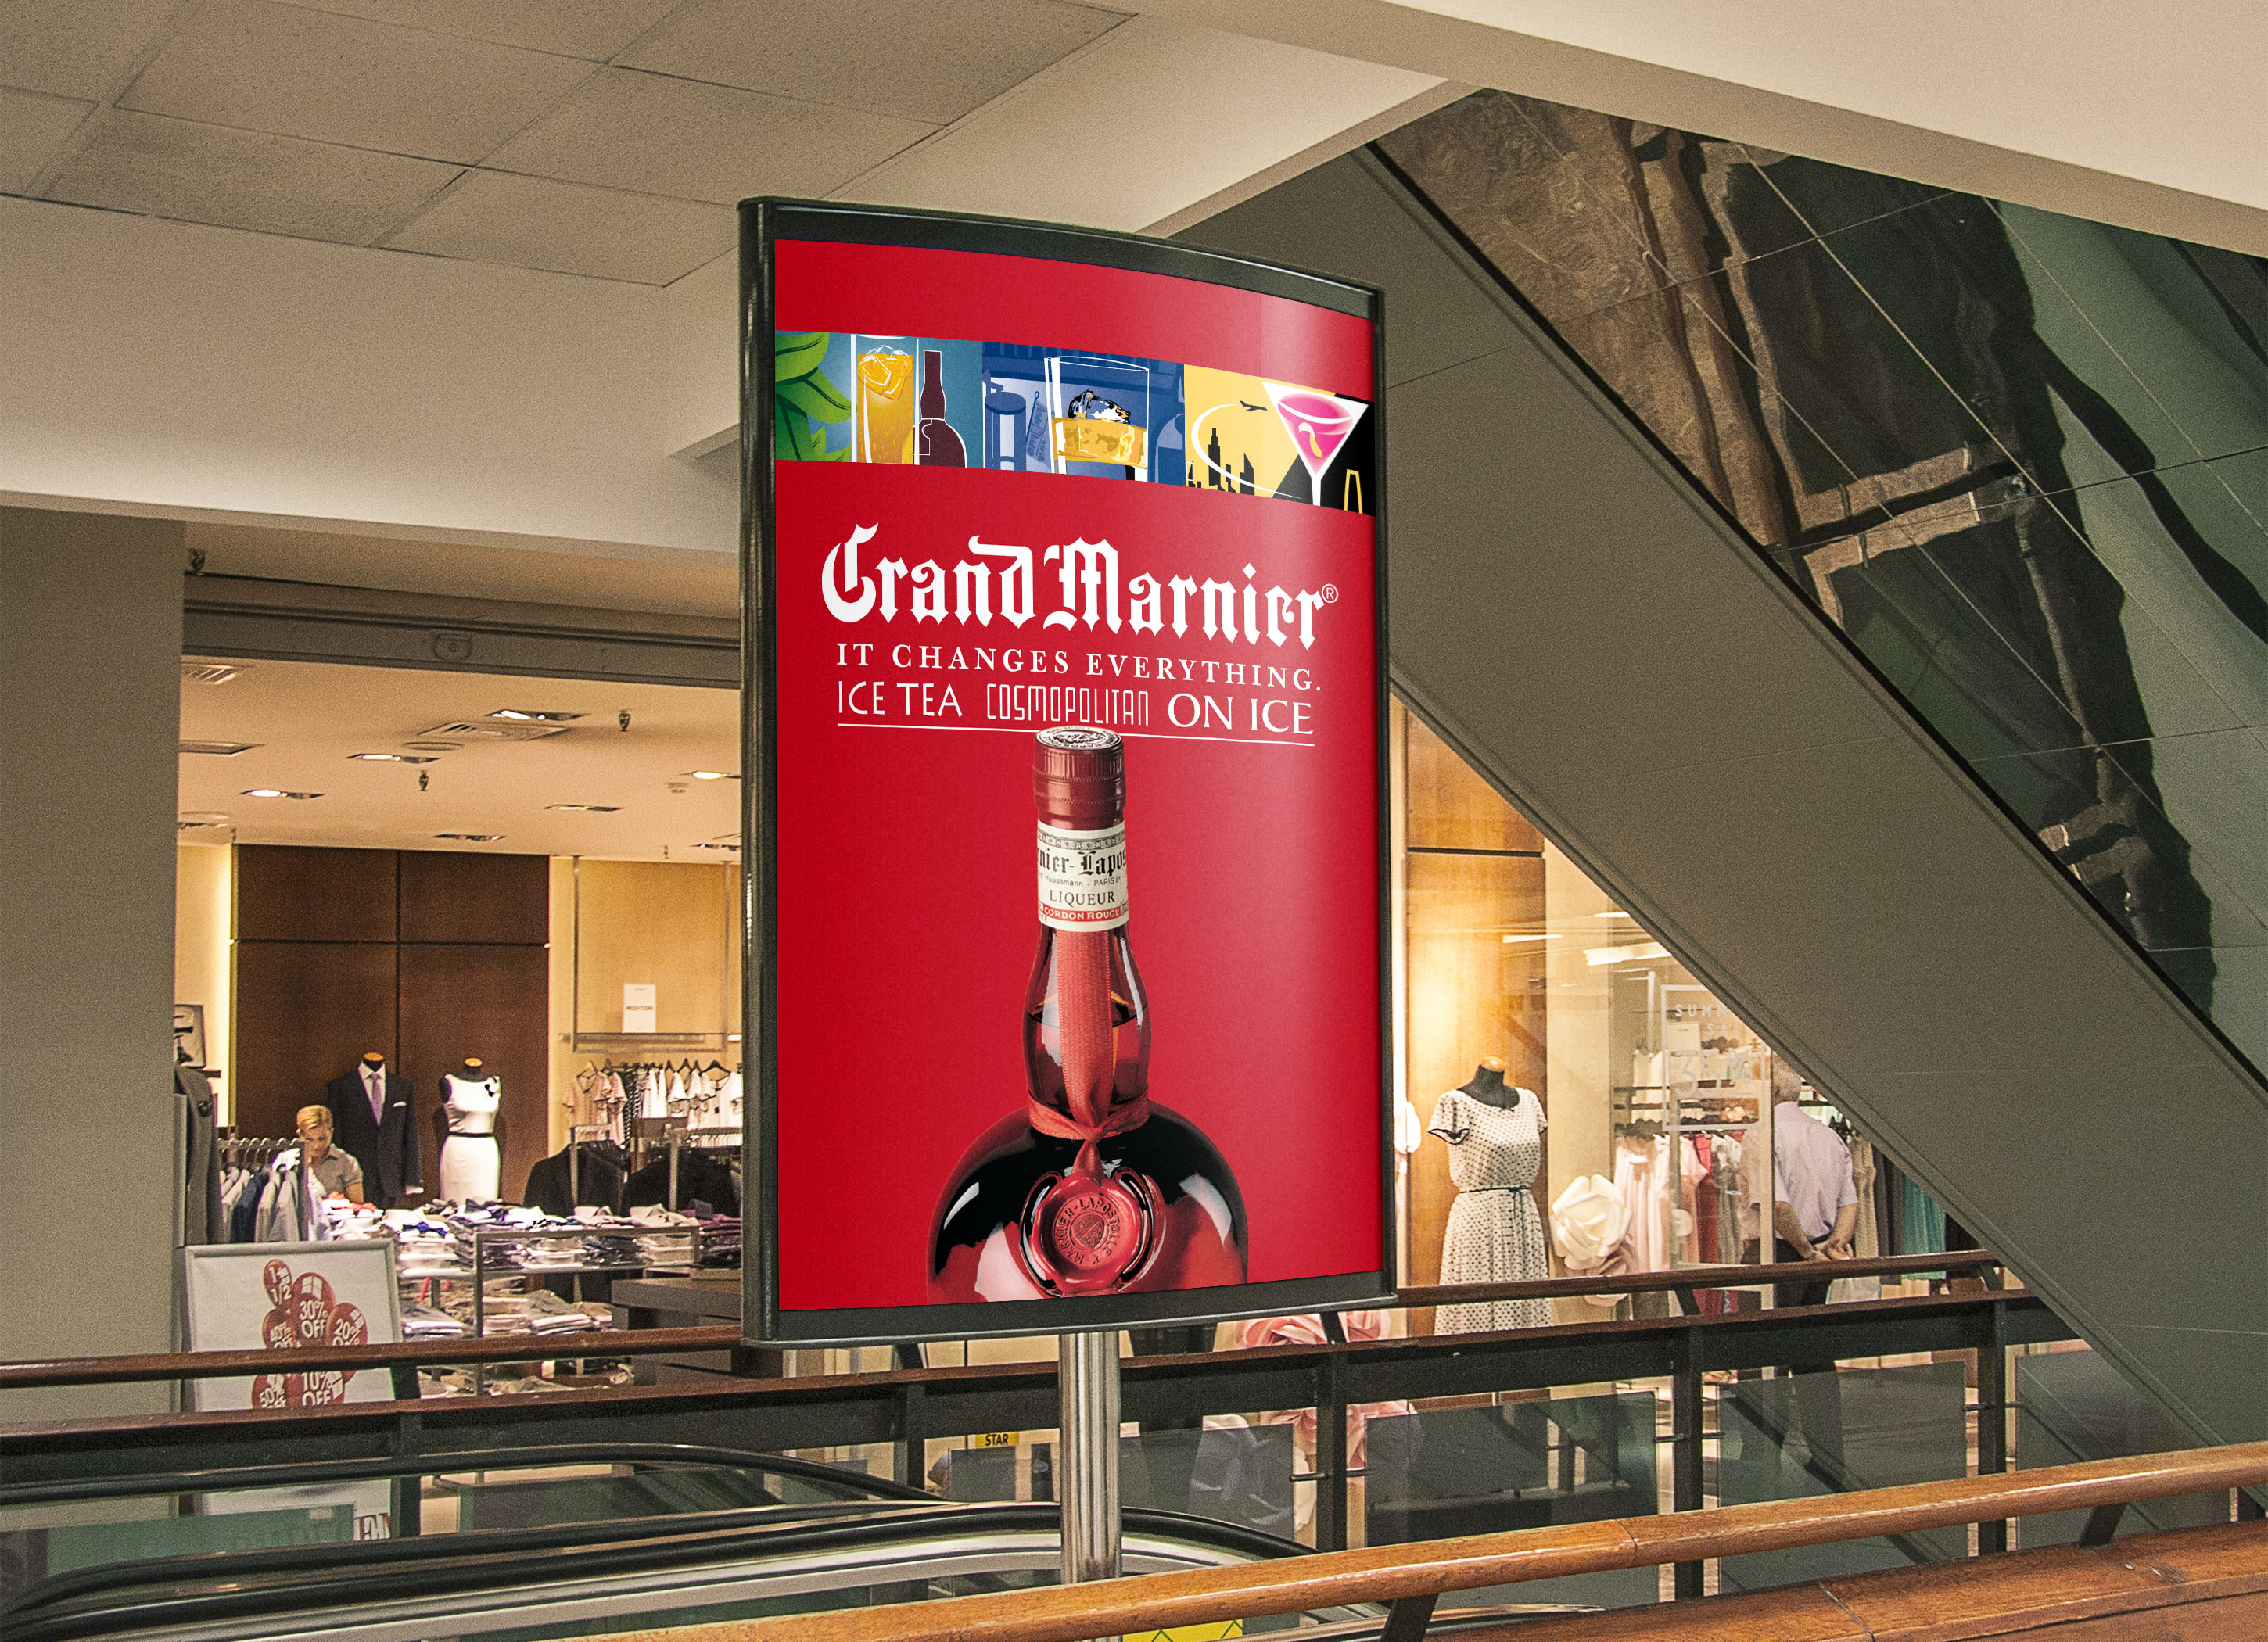 grand marnier sign